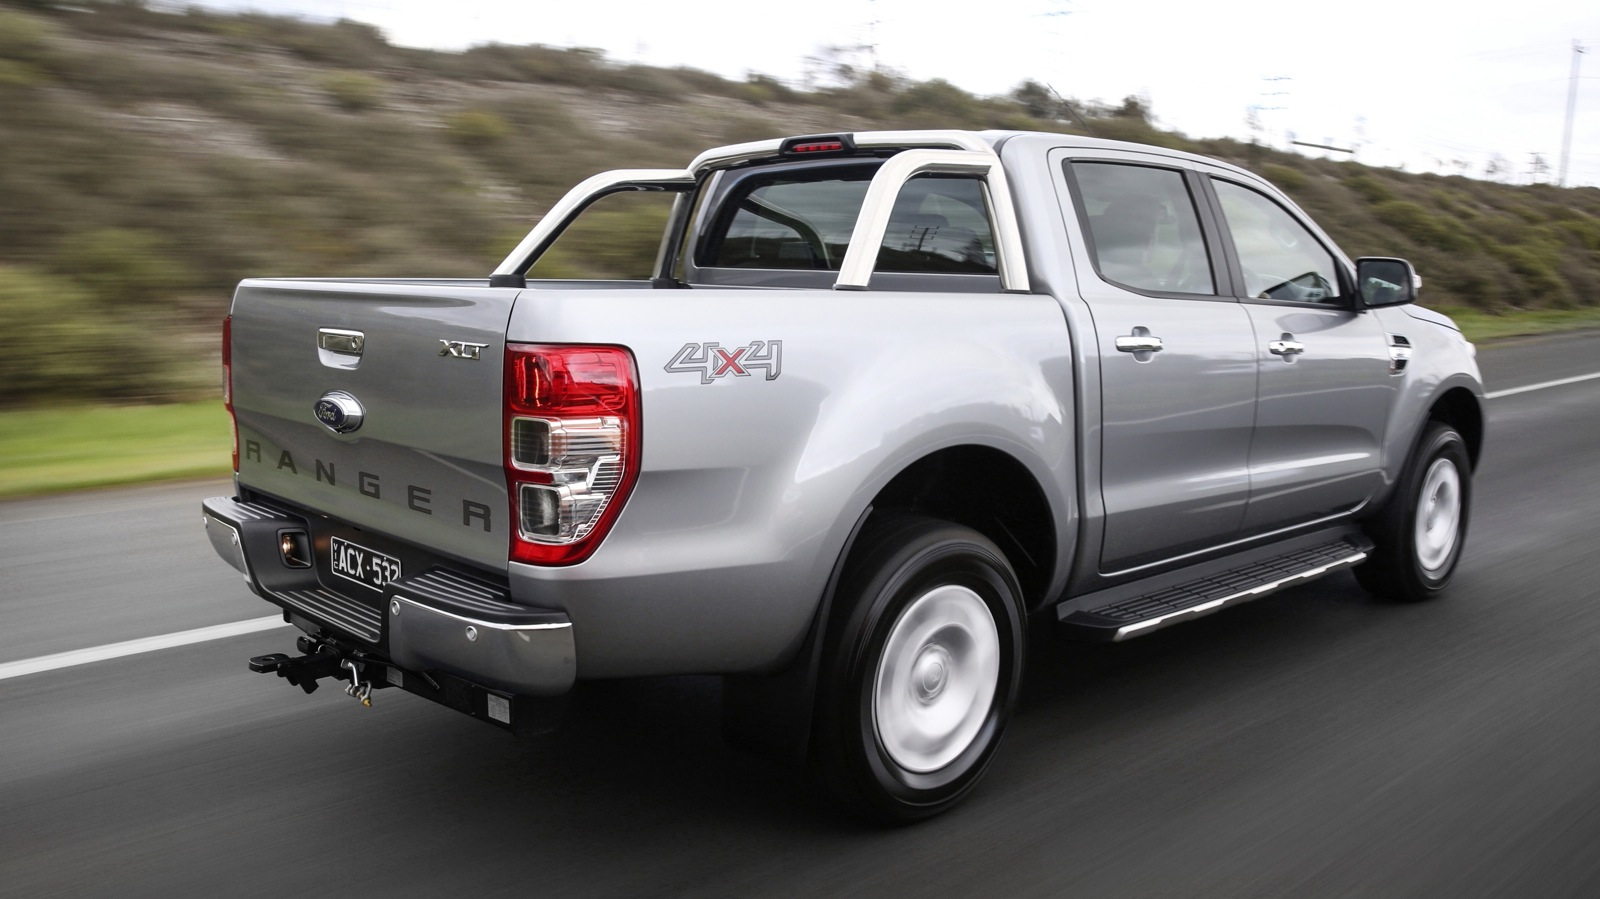 2016 ford ranger - photo #32